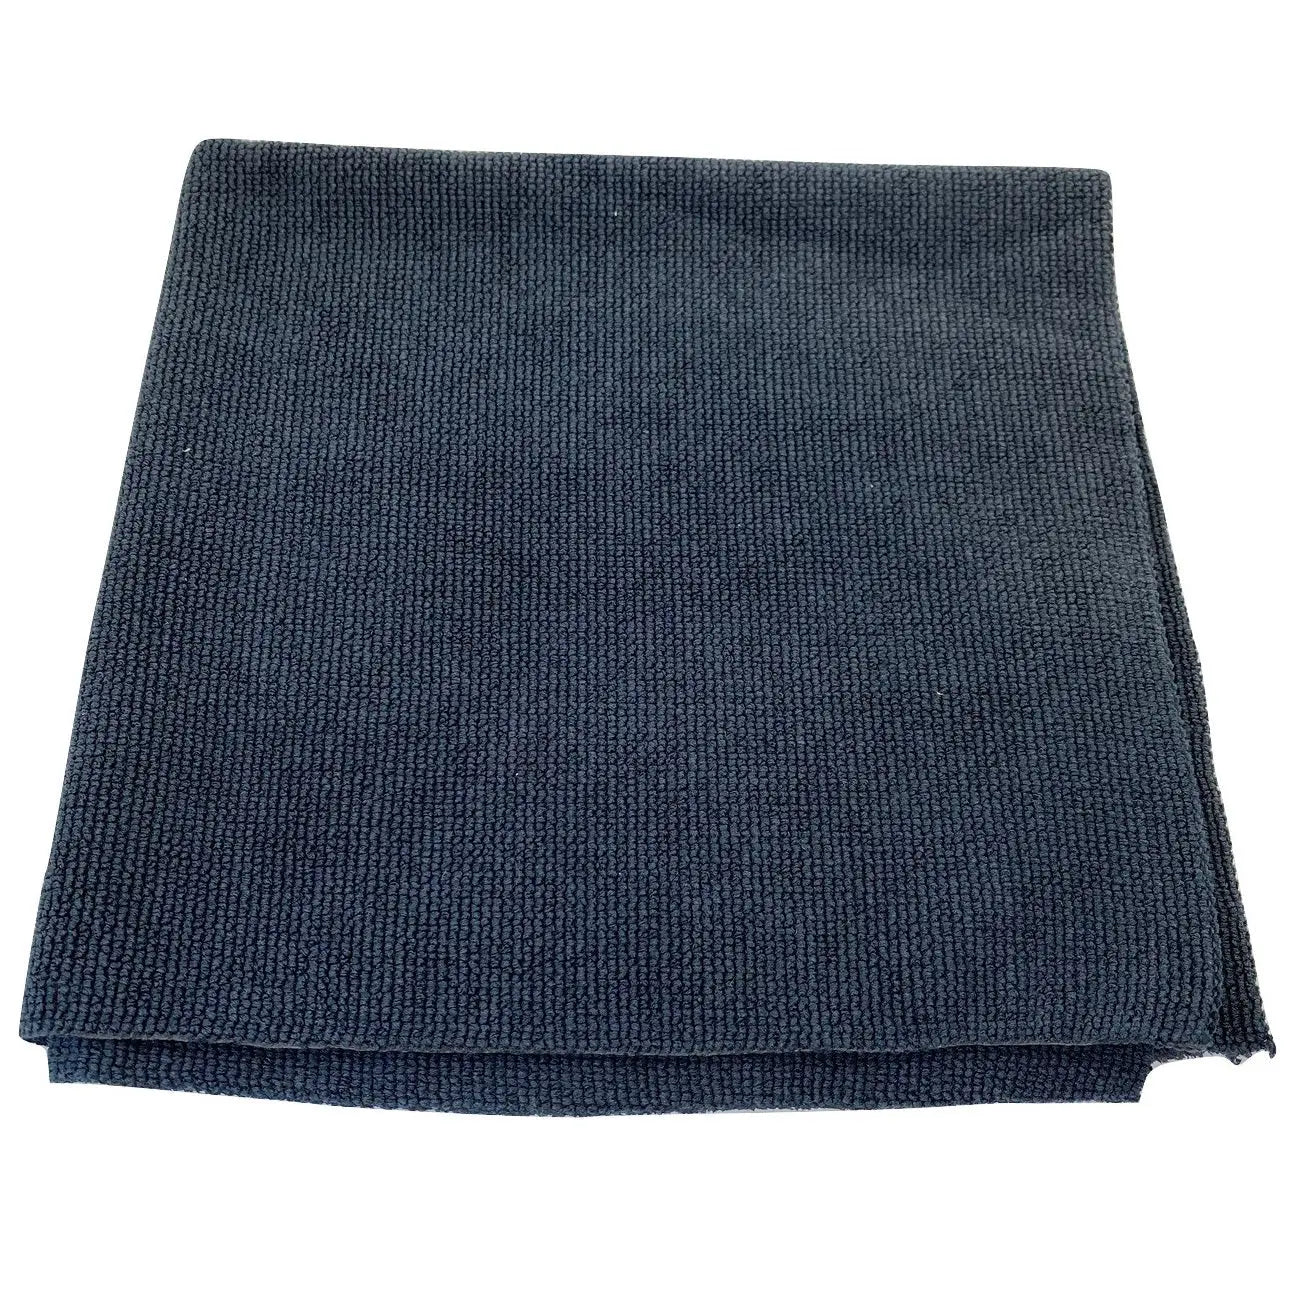 Custom Car Care Edgeless Towel